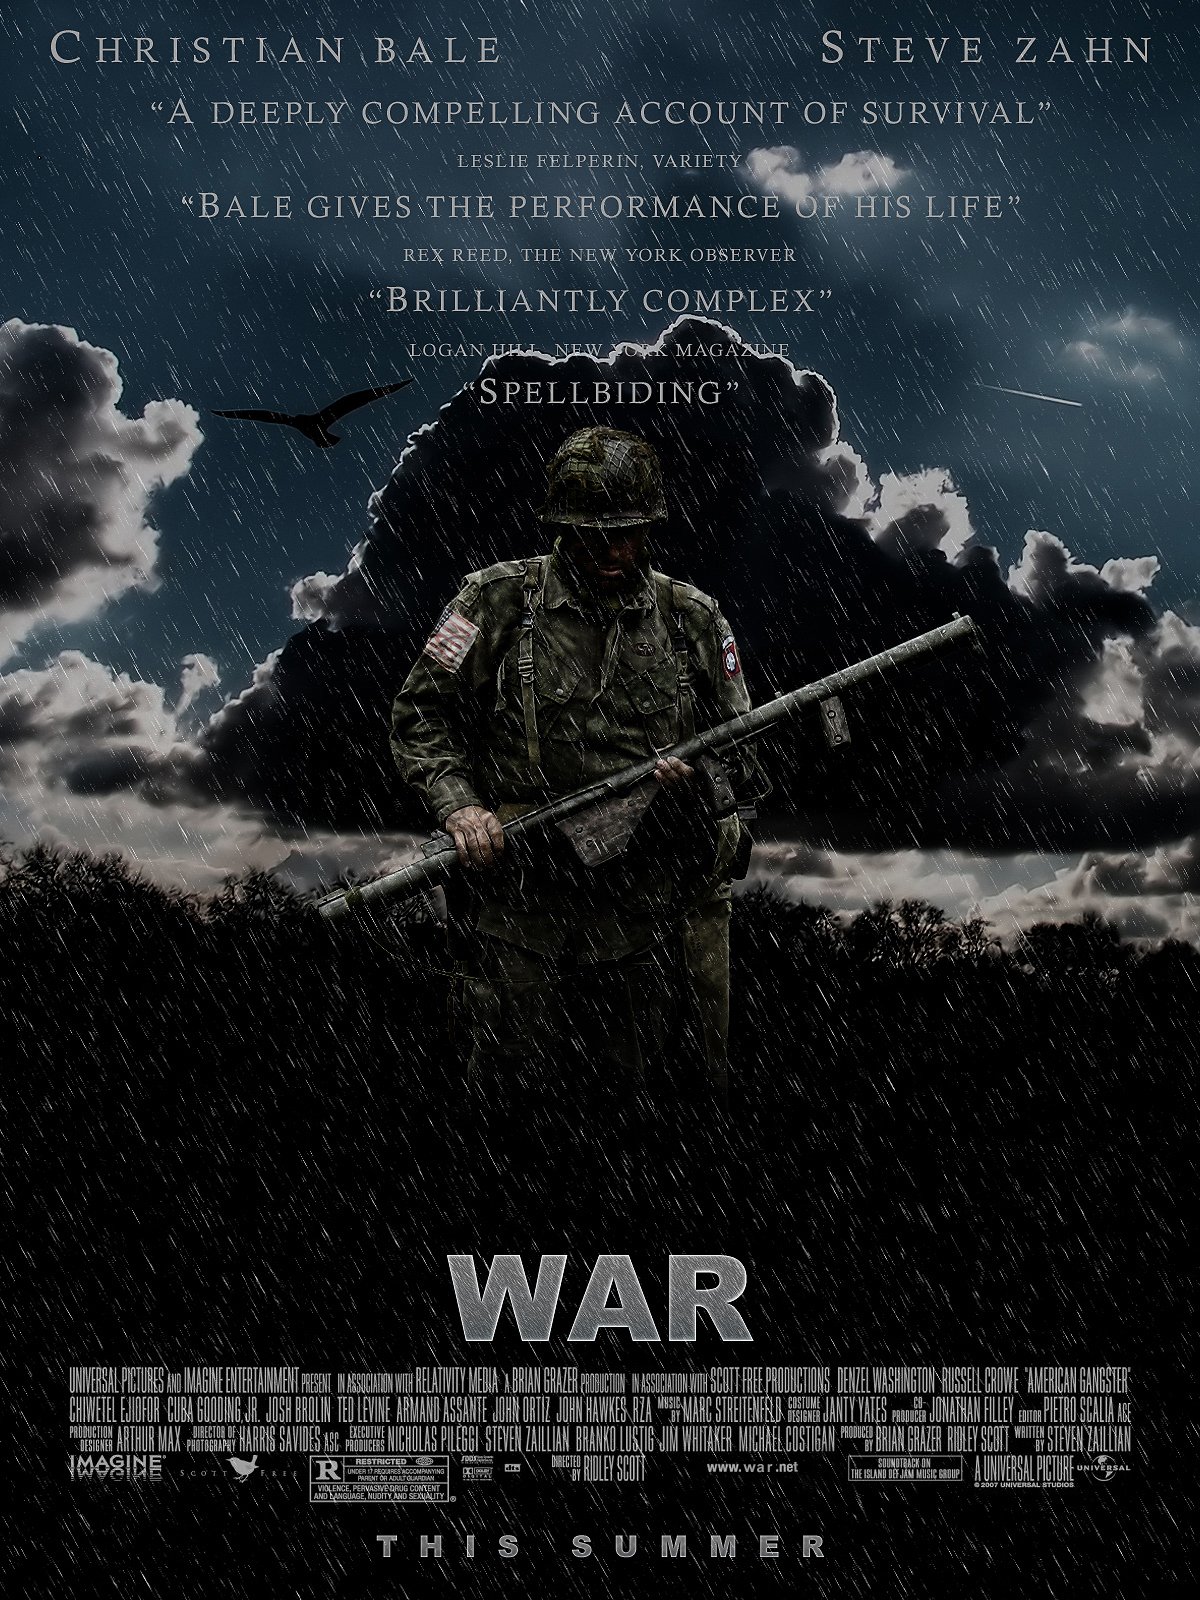 Designing A War Movie Poster Tutzor